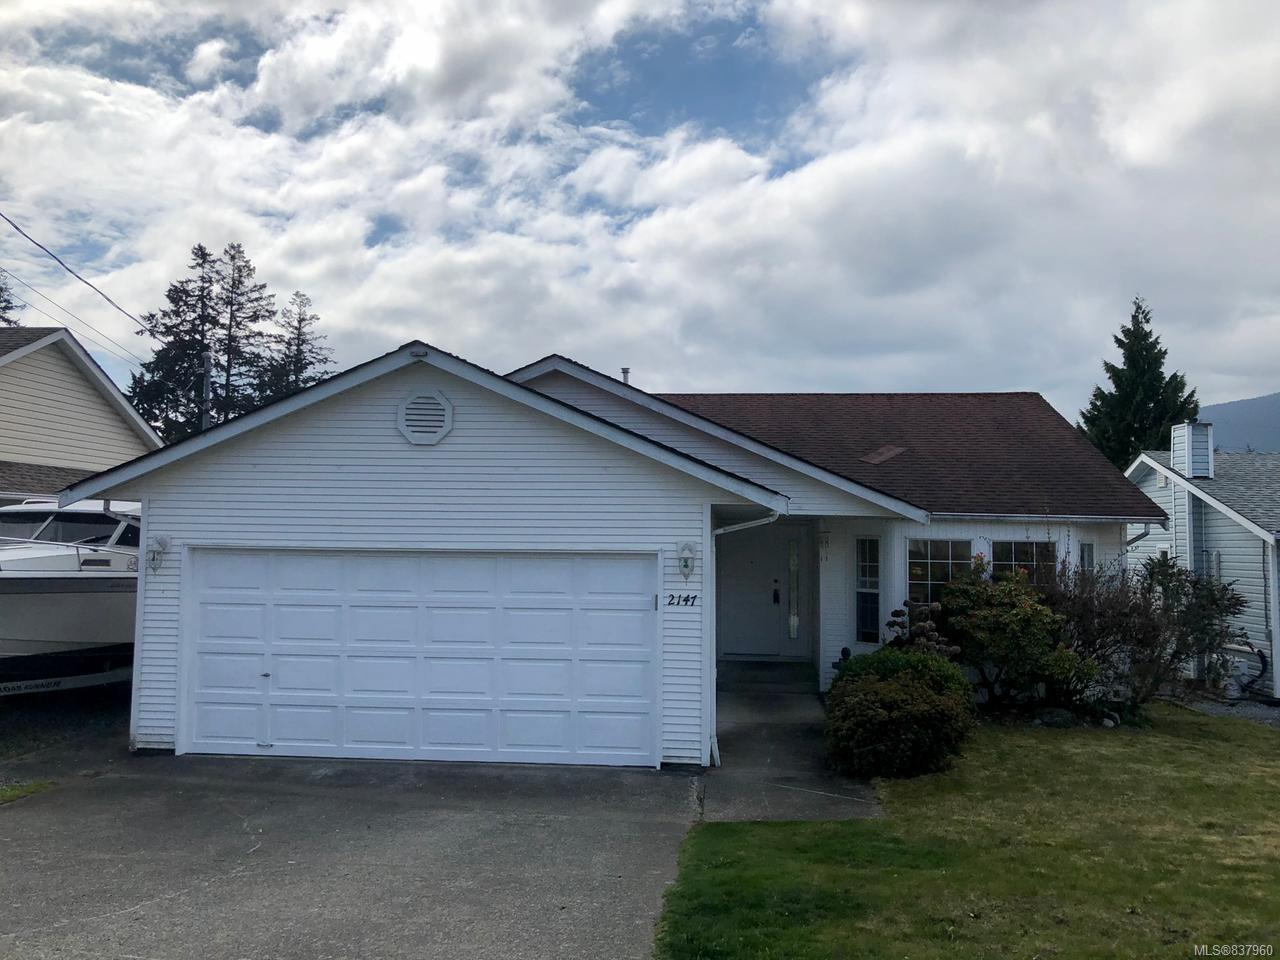 FEATURED LISTING: 2147 Lang Cres NANAIMO